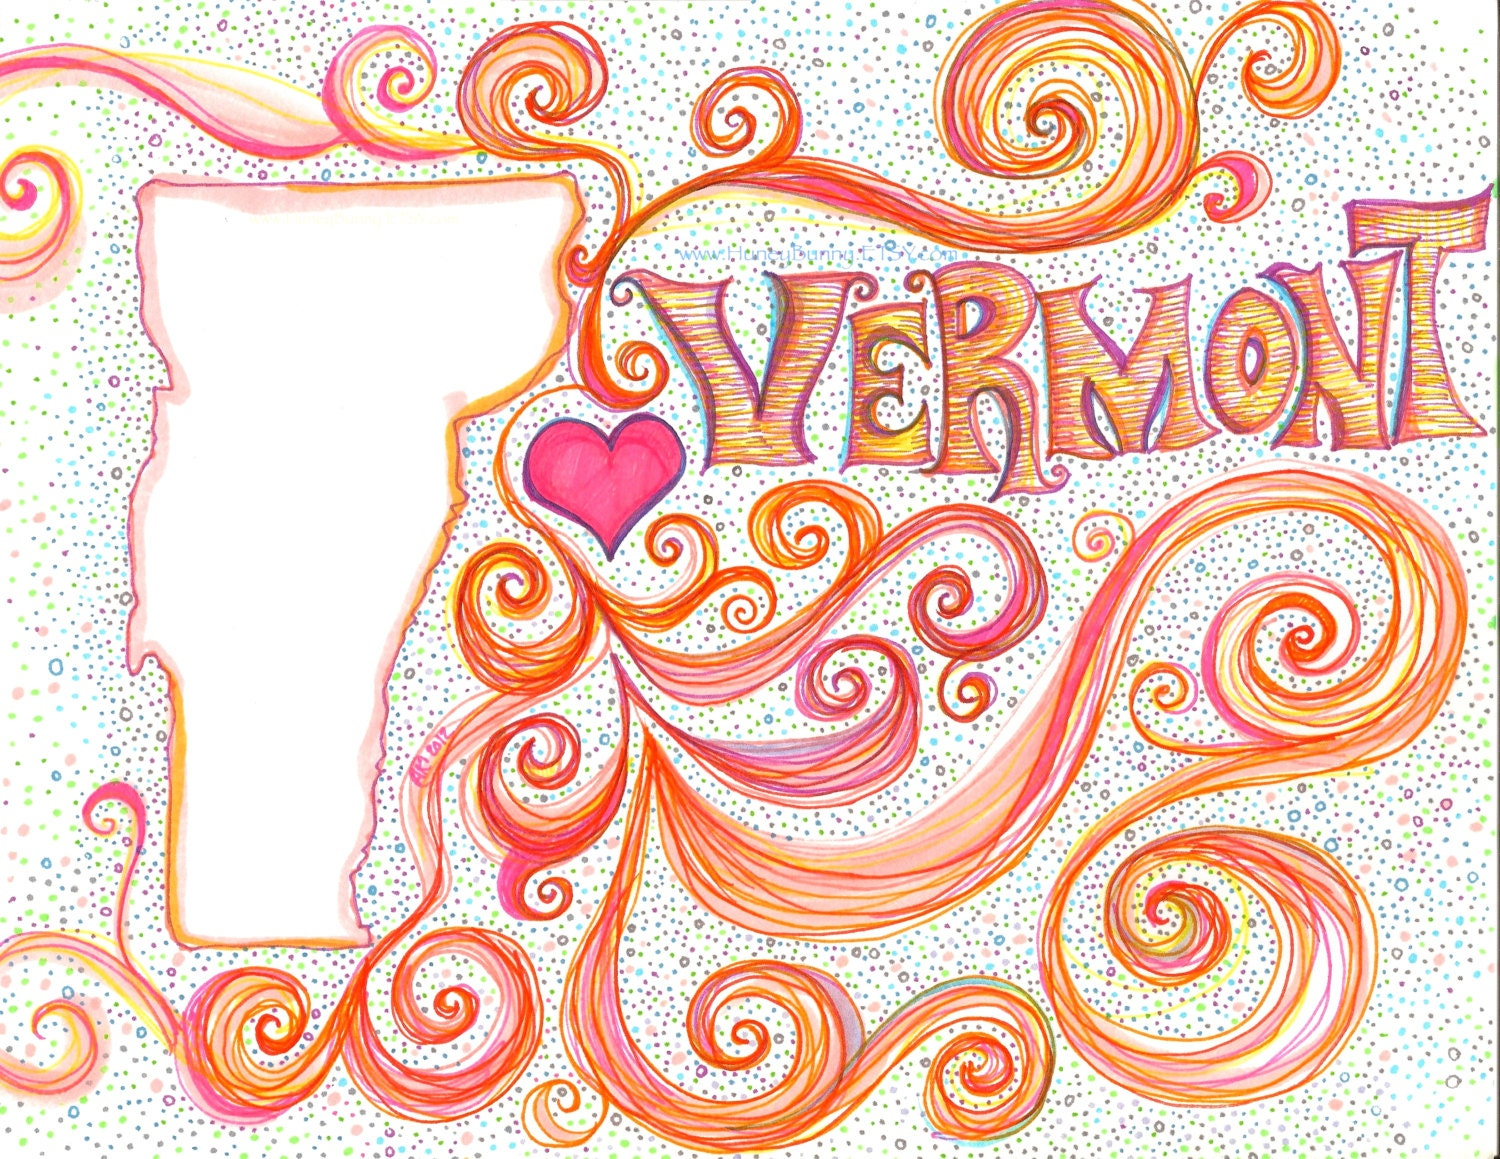 Vermont - I Love Vermont  - Drawing. Original Whimsical Work with Sharpies and Copic markers. Art from Allie Kelley